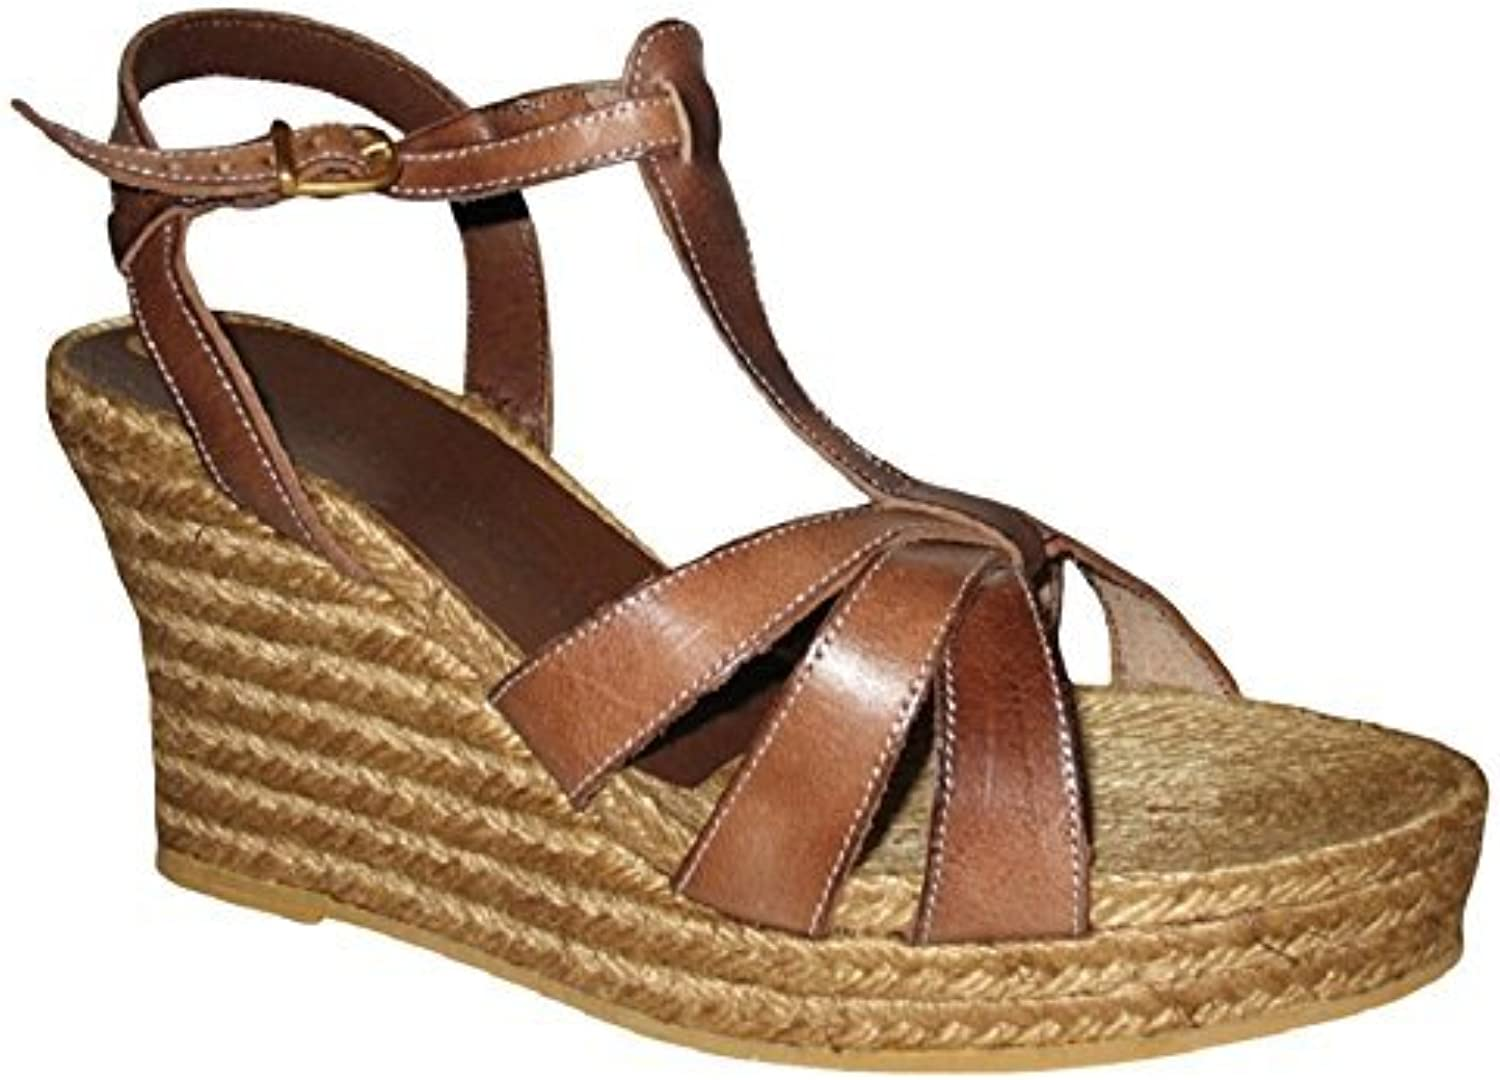 Andre Assous Women's Wedge Platform Espadrille Sandals shoes 11 B(M) US